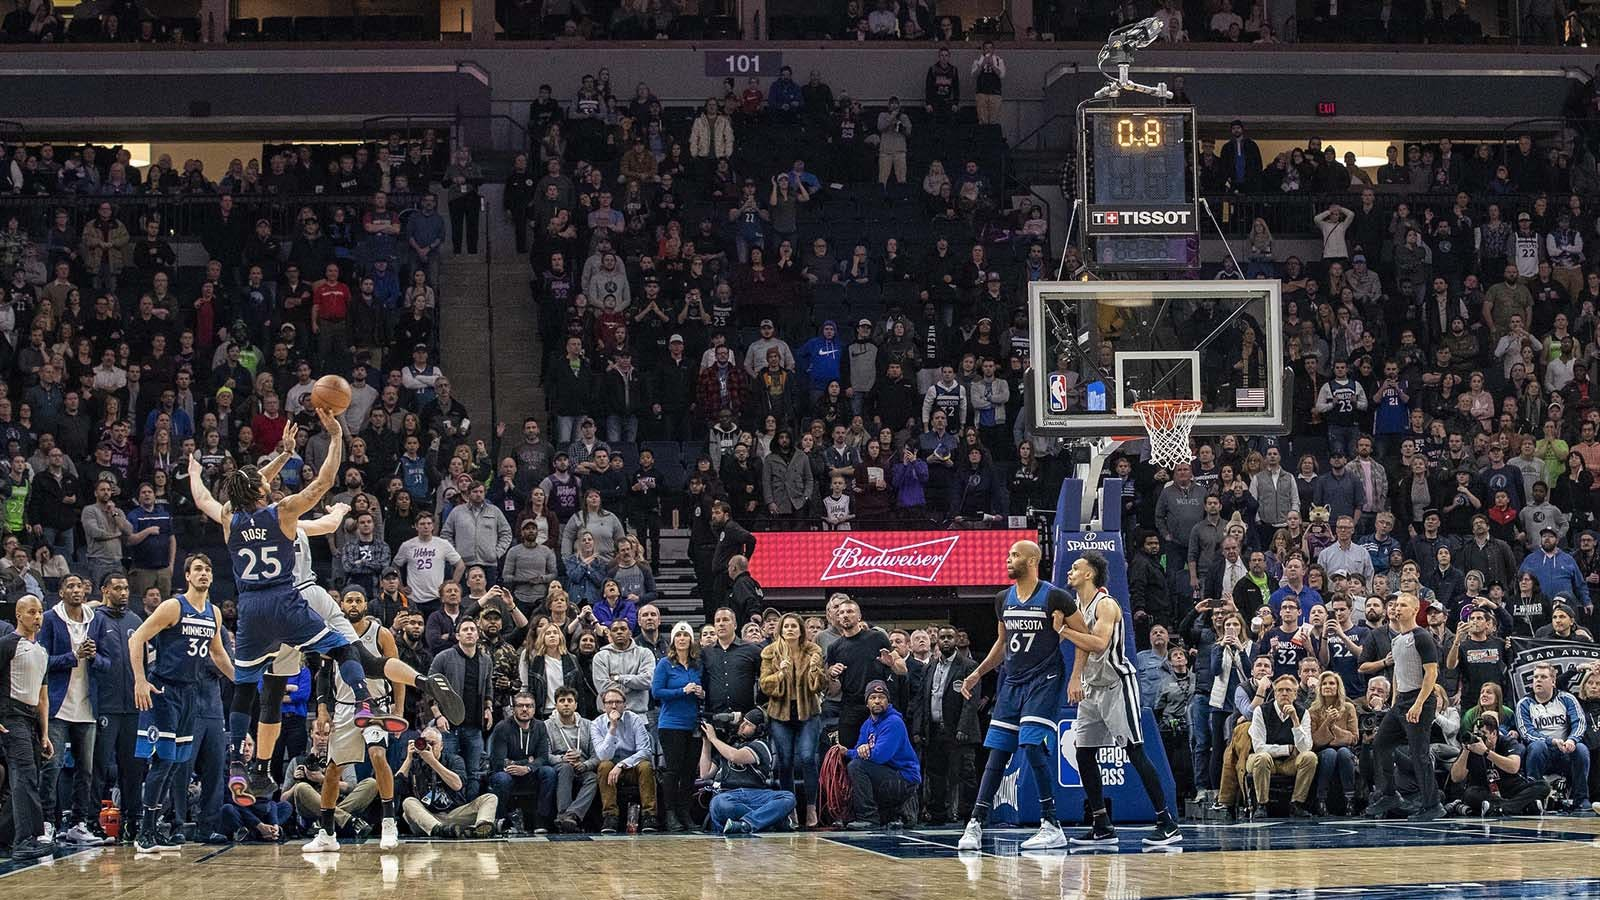 Rose misses game-tying 3, Timberwolves lose at home to Spurs | FOX